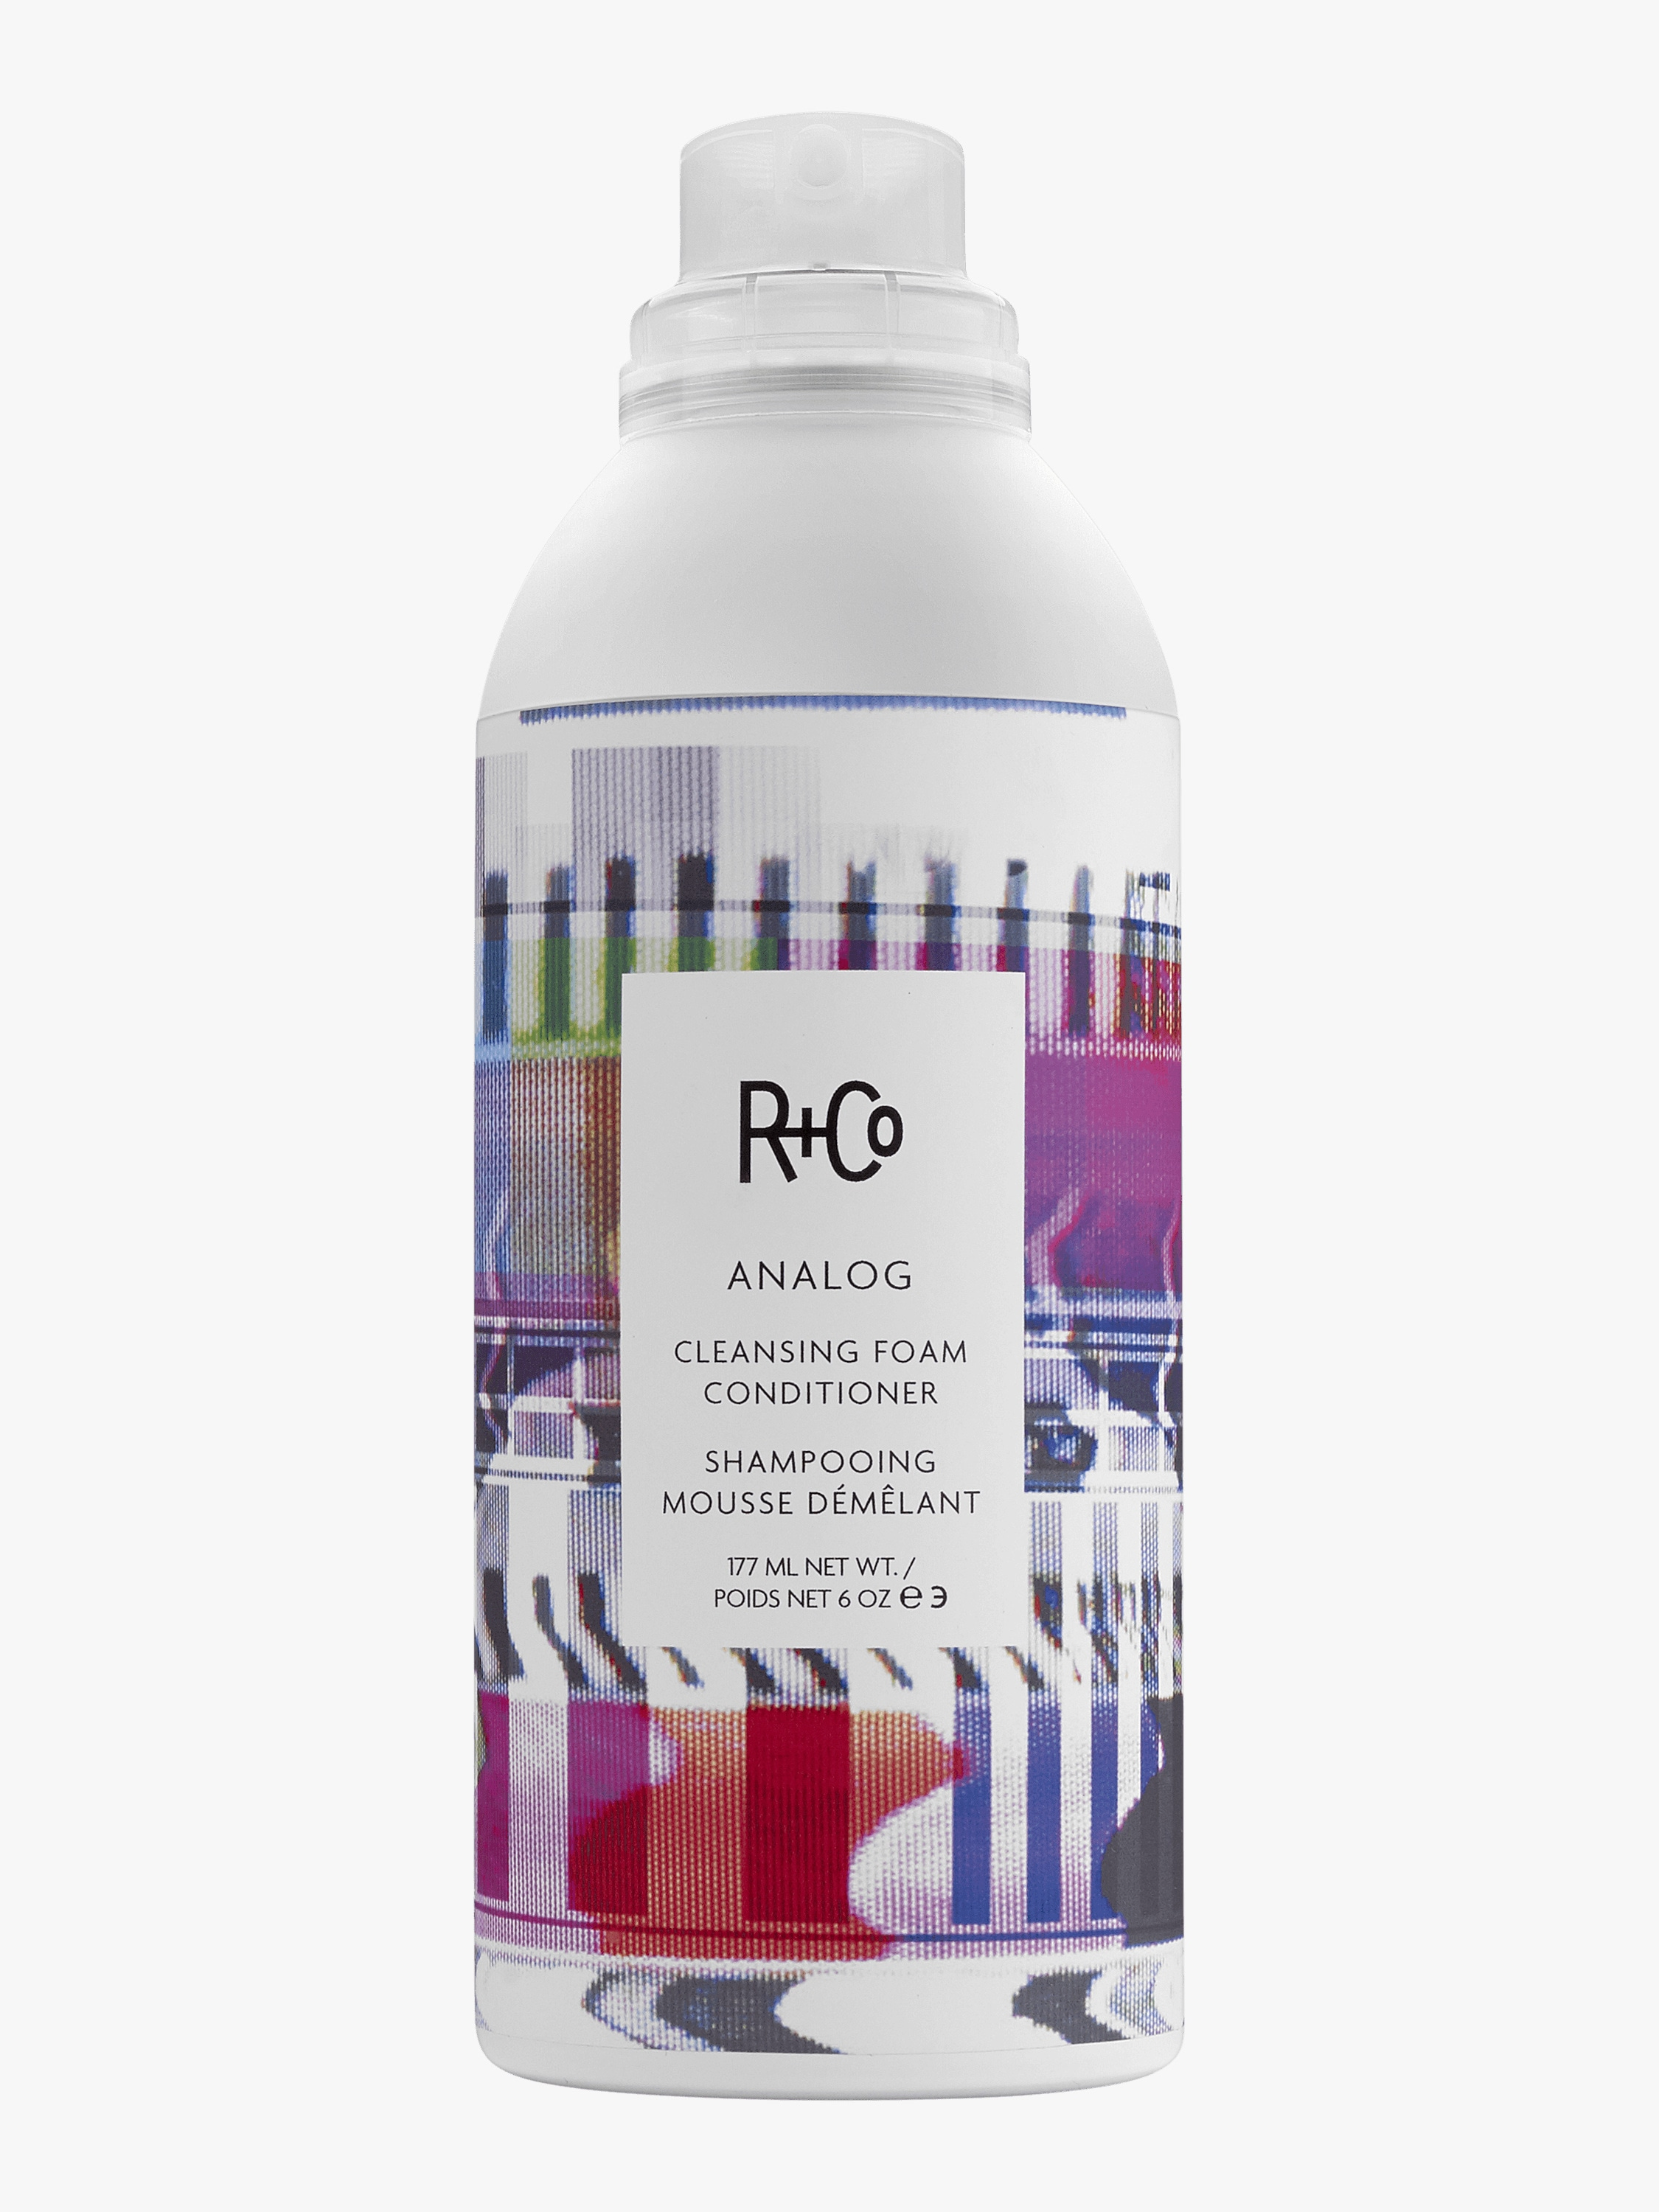 R+Co Analog Cleansing Foam Conditioner 177ml 2